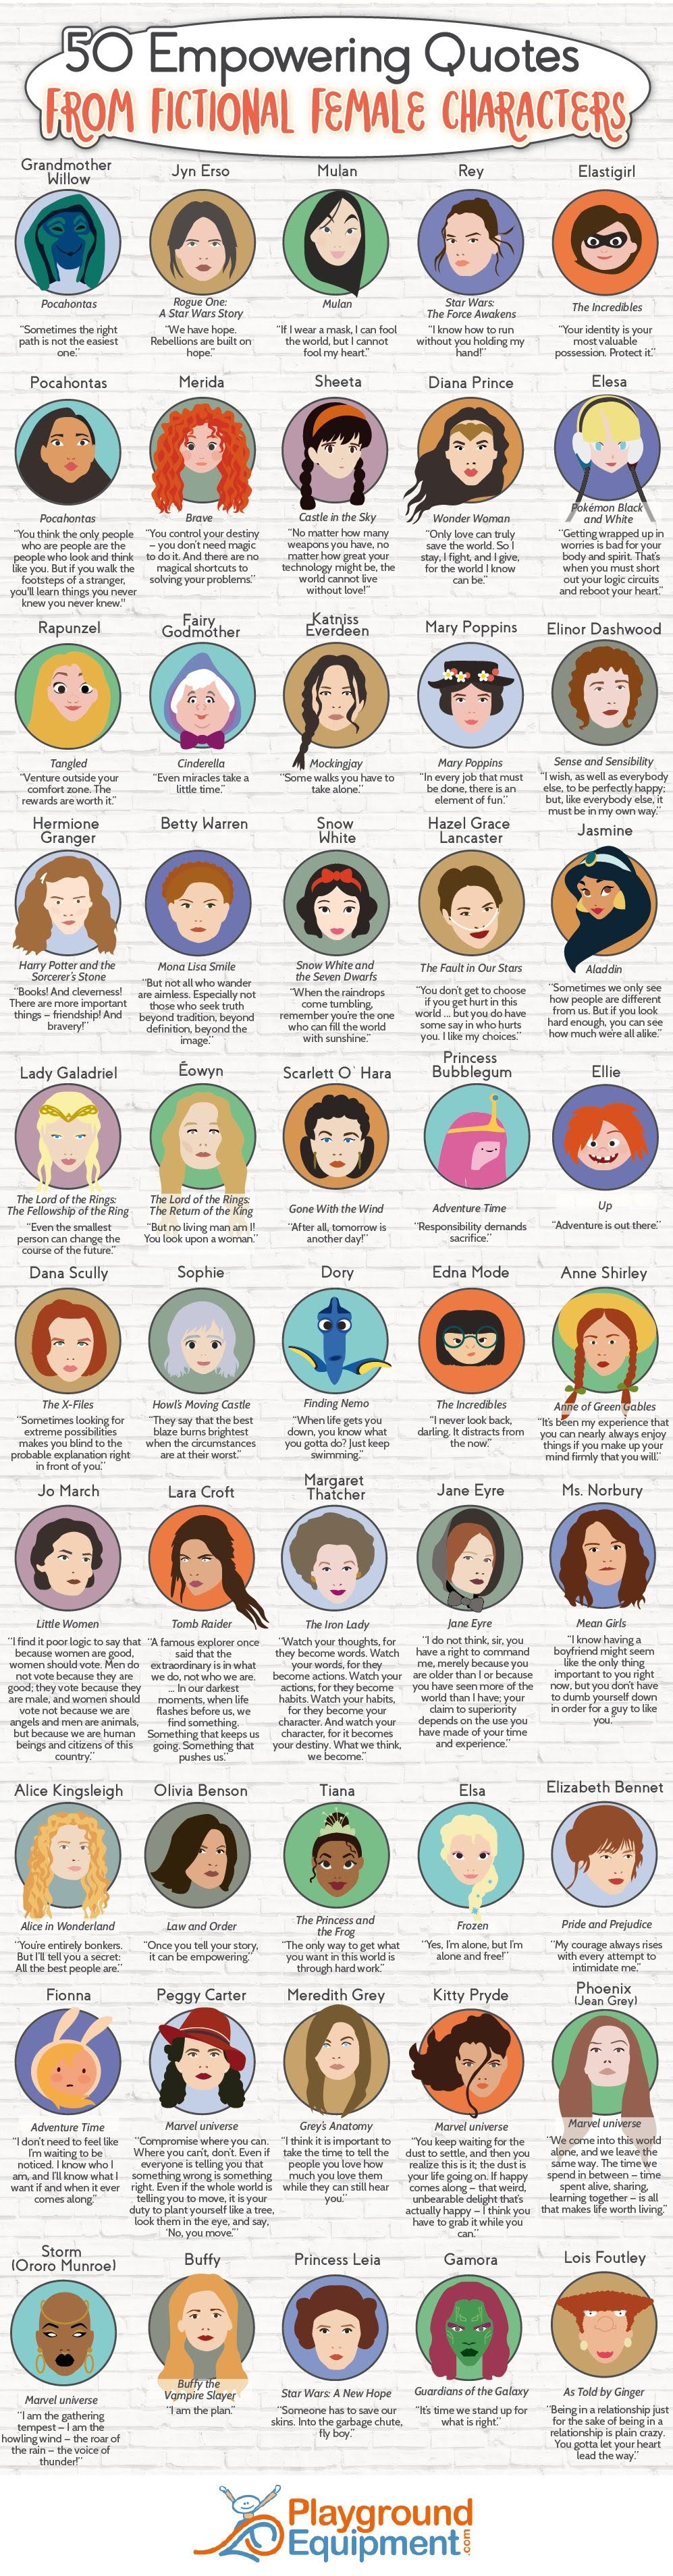 50 Empowering Quotes from Fictional Female Characters #infographic